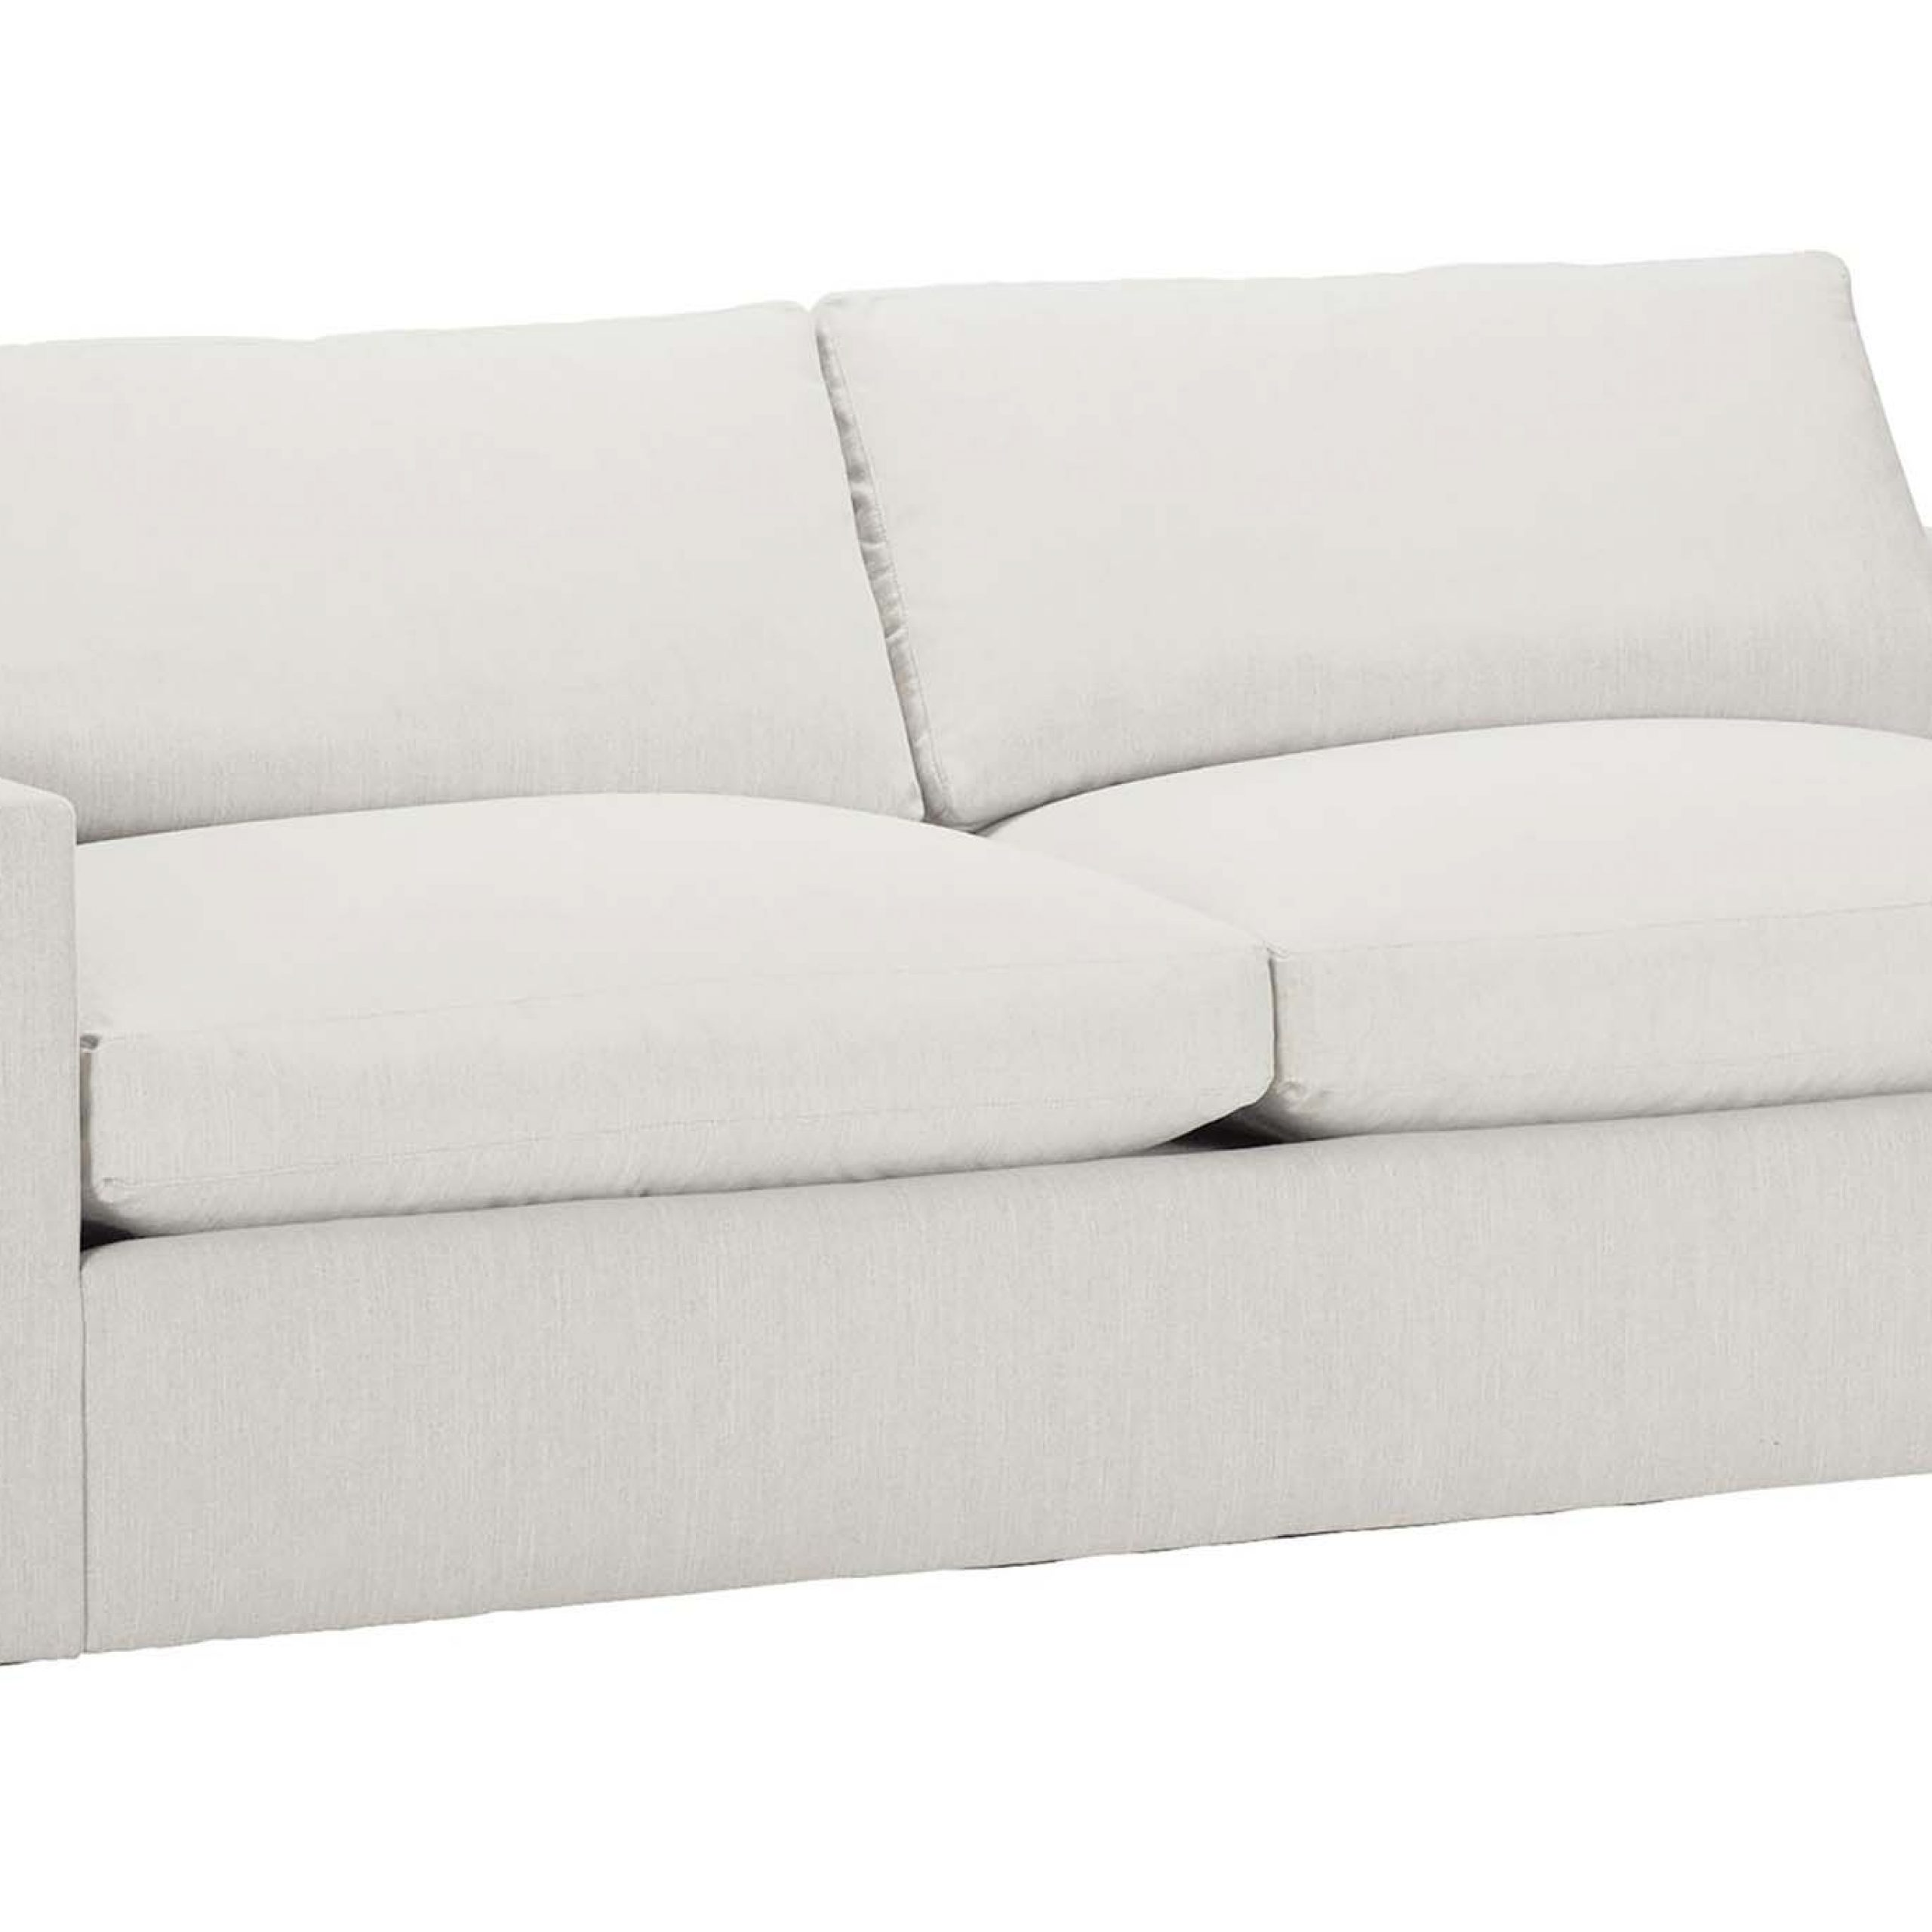 Redding Ridge Upholstered Indoor/Outdoor Sofa | Ethan Allen With Outdoor Sofas And Chairs (View 11 of 15)